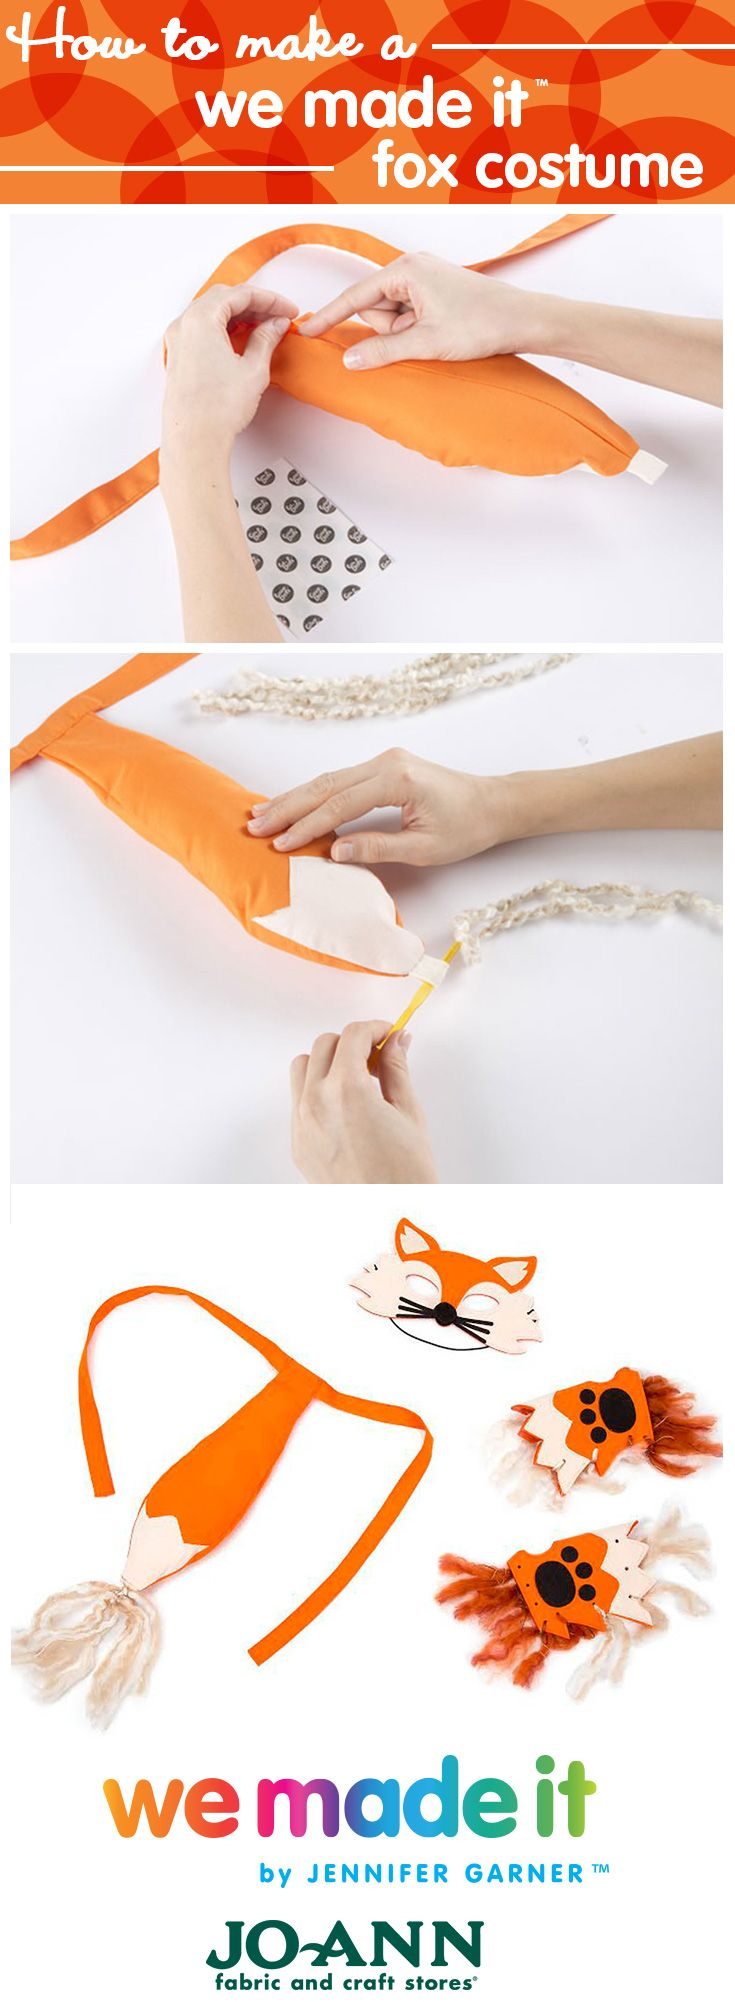 Fox Costume // DIY Costume for kids  from the We Made  It By Jennifer Garner Kids Craft line at Joann.com